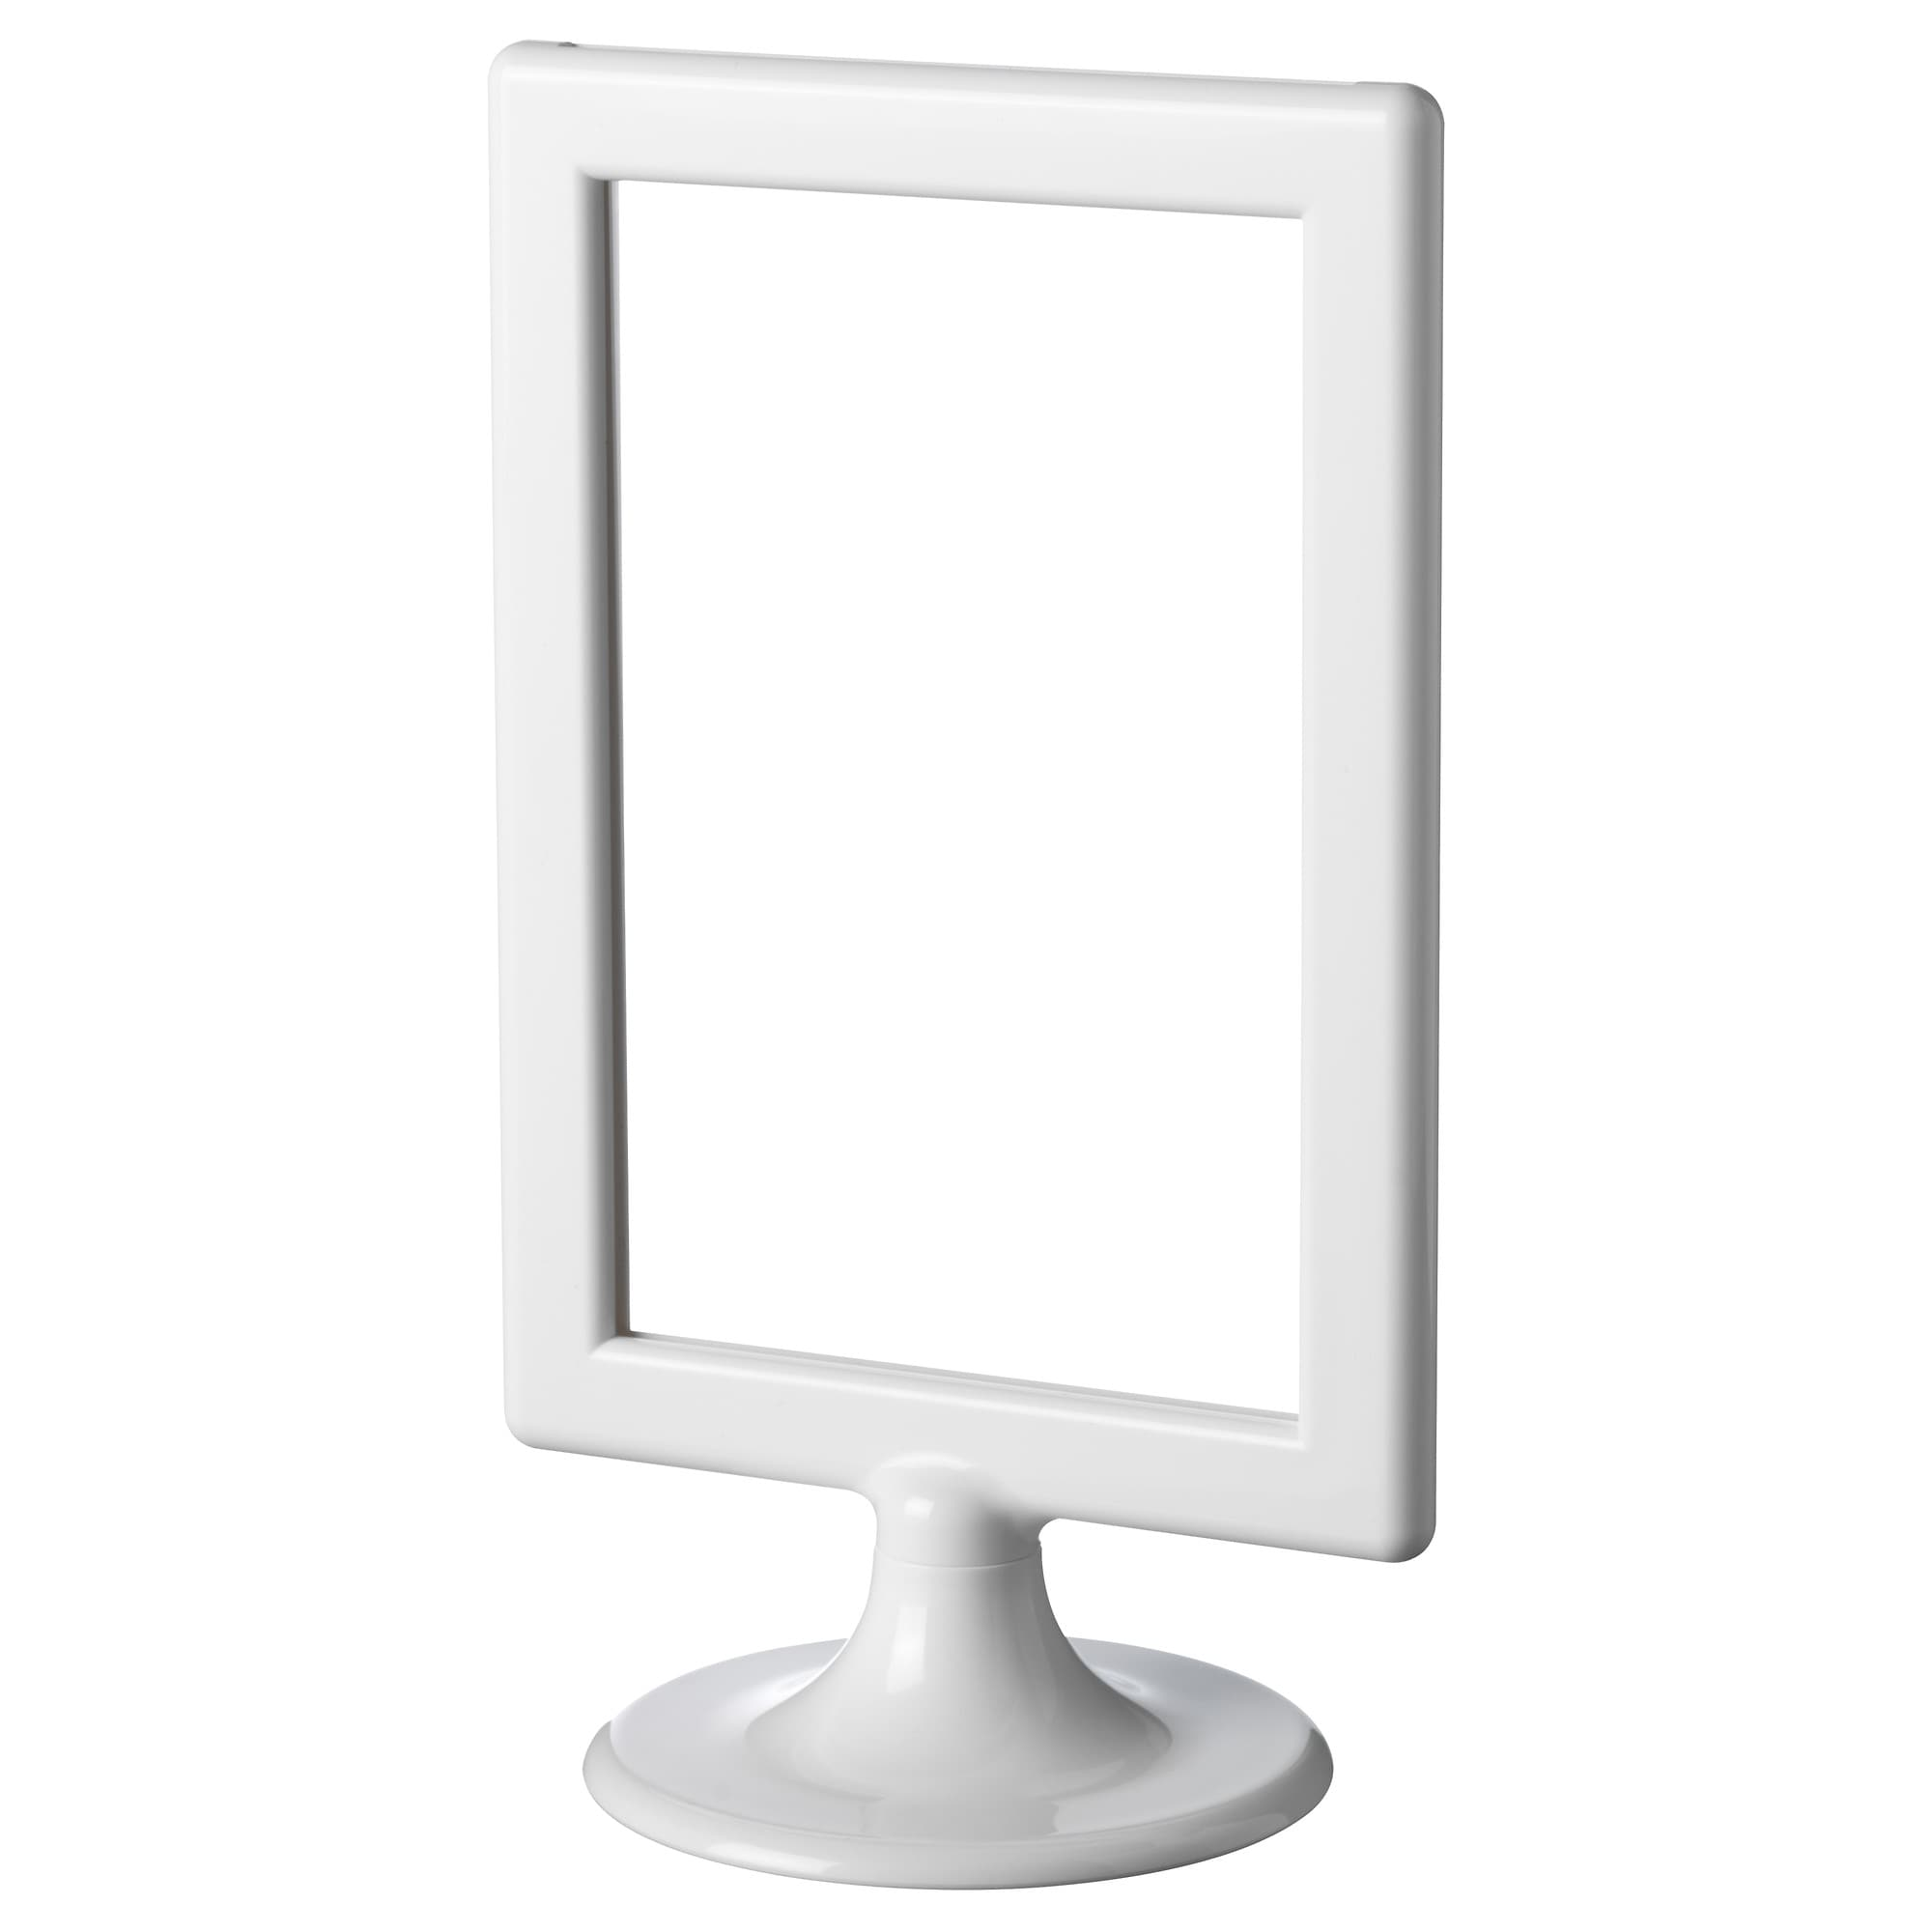 Tolsby Frame For 2 Pictures White Ikea Ikea Tolsby Frame Ikea Photo Frames Ikea Wedding